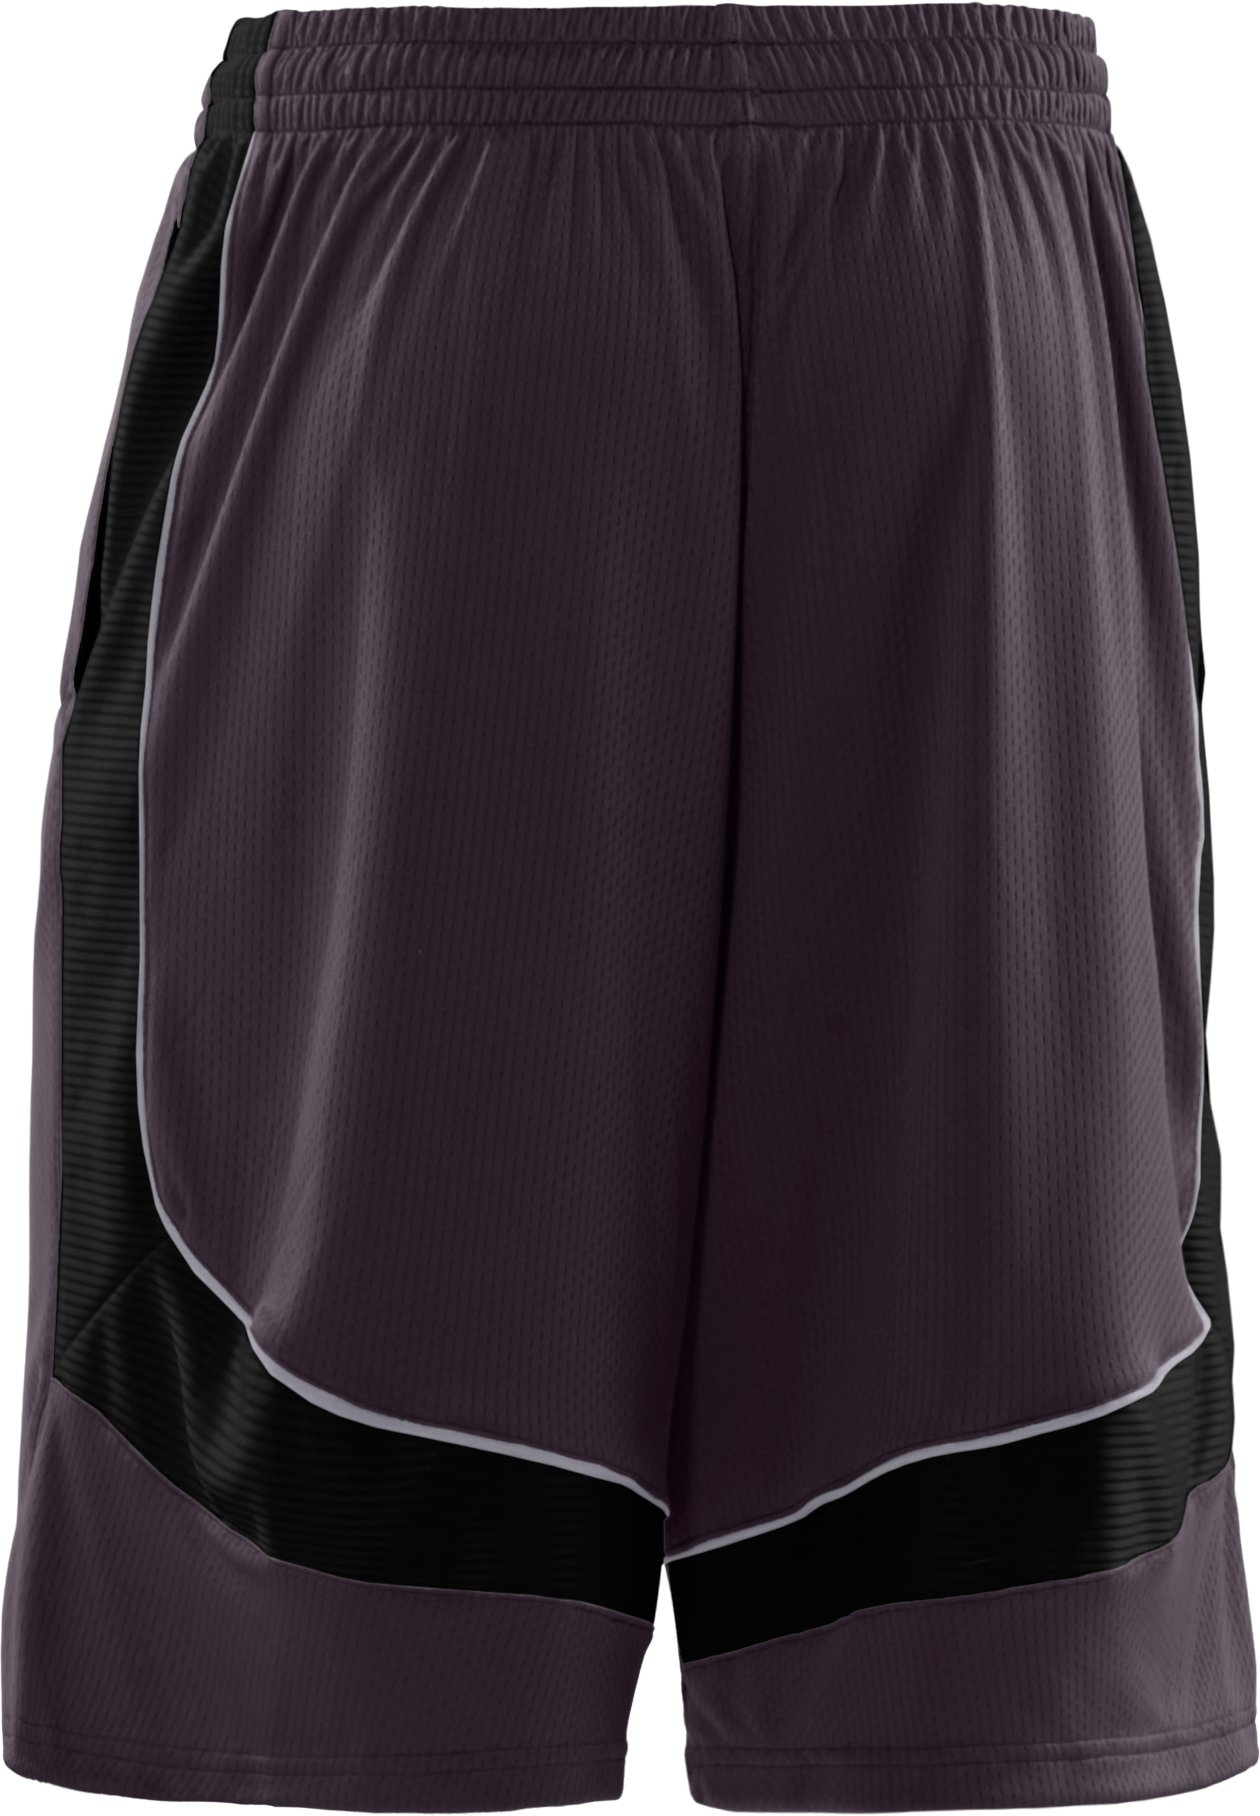 "Men's 12"" Flow Basketball Shorts, Charcoal"